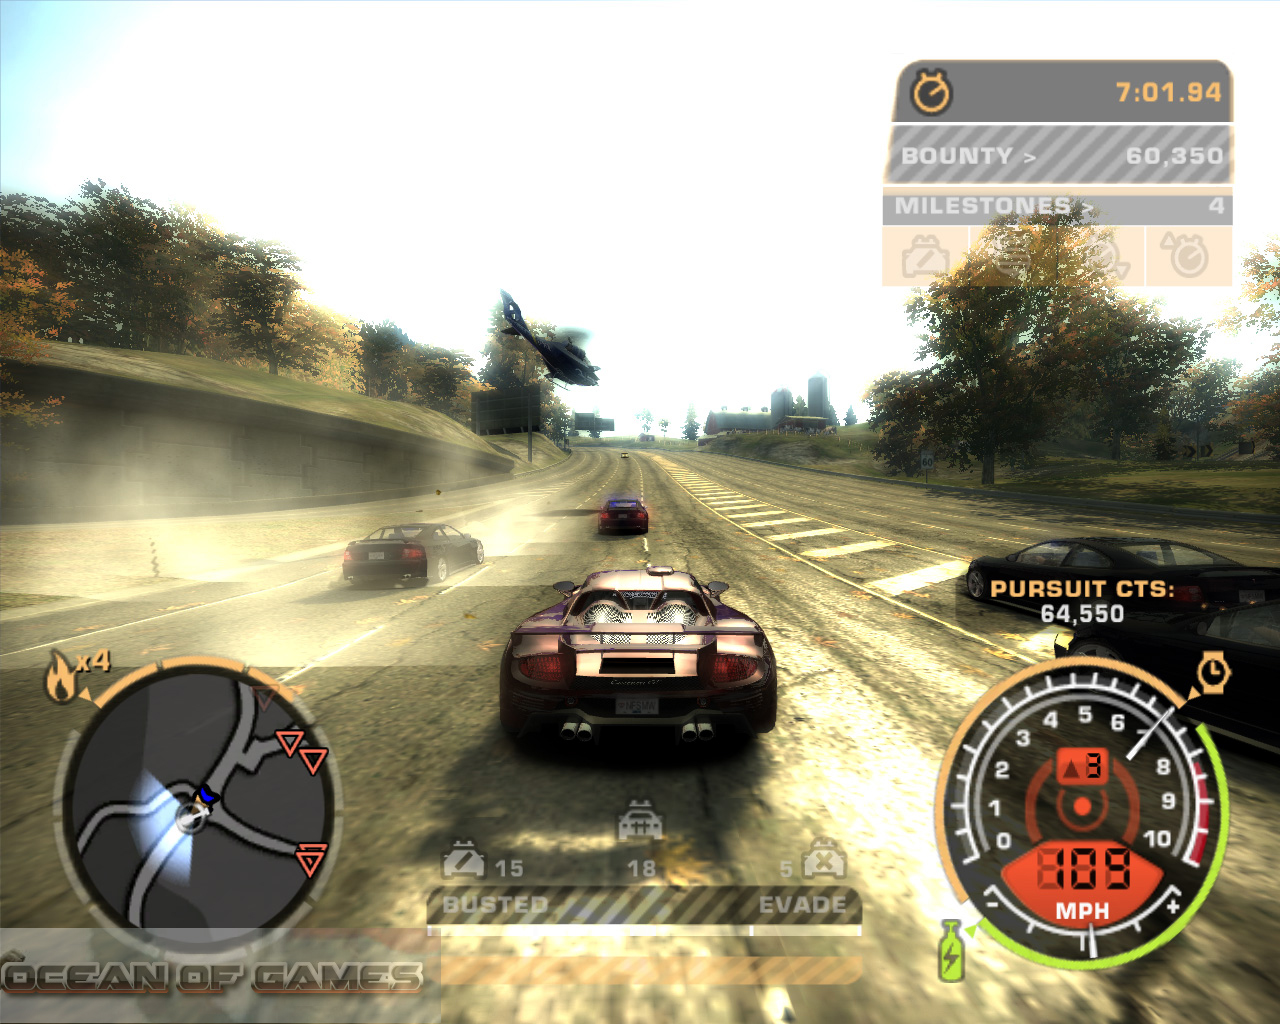 Need For Speed Most Wanted Black Edition Free Download - Ocean Of Games